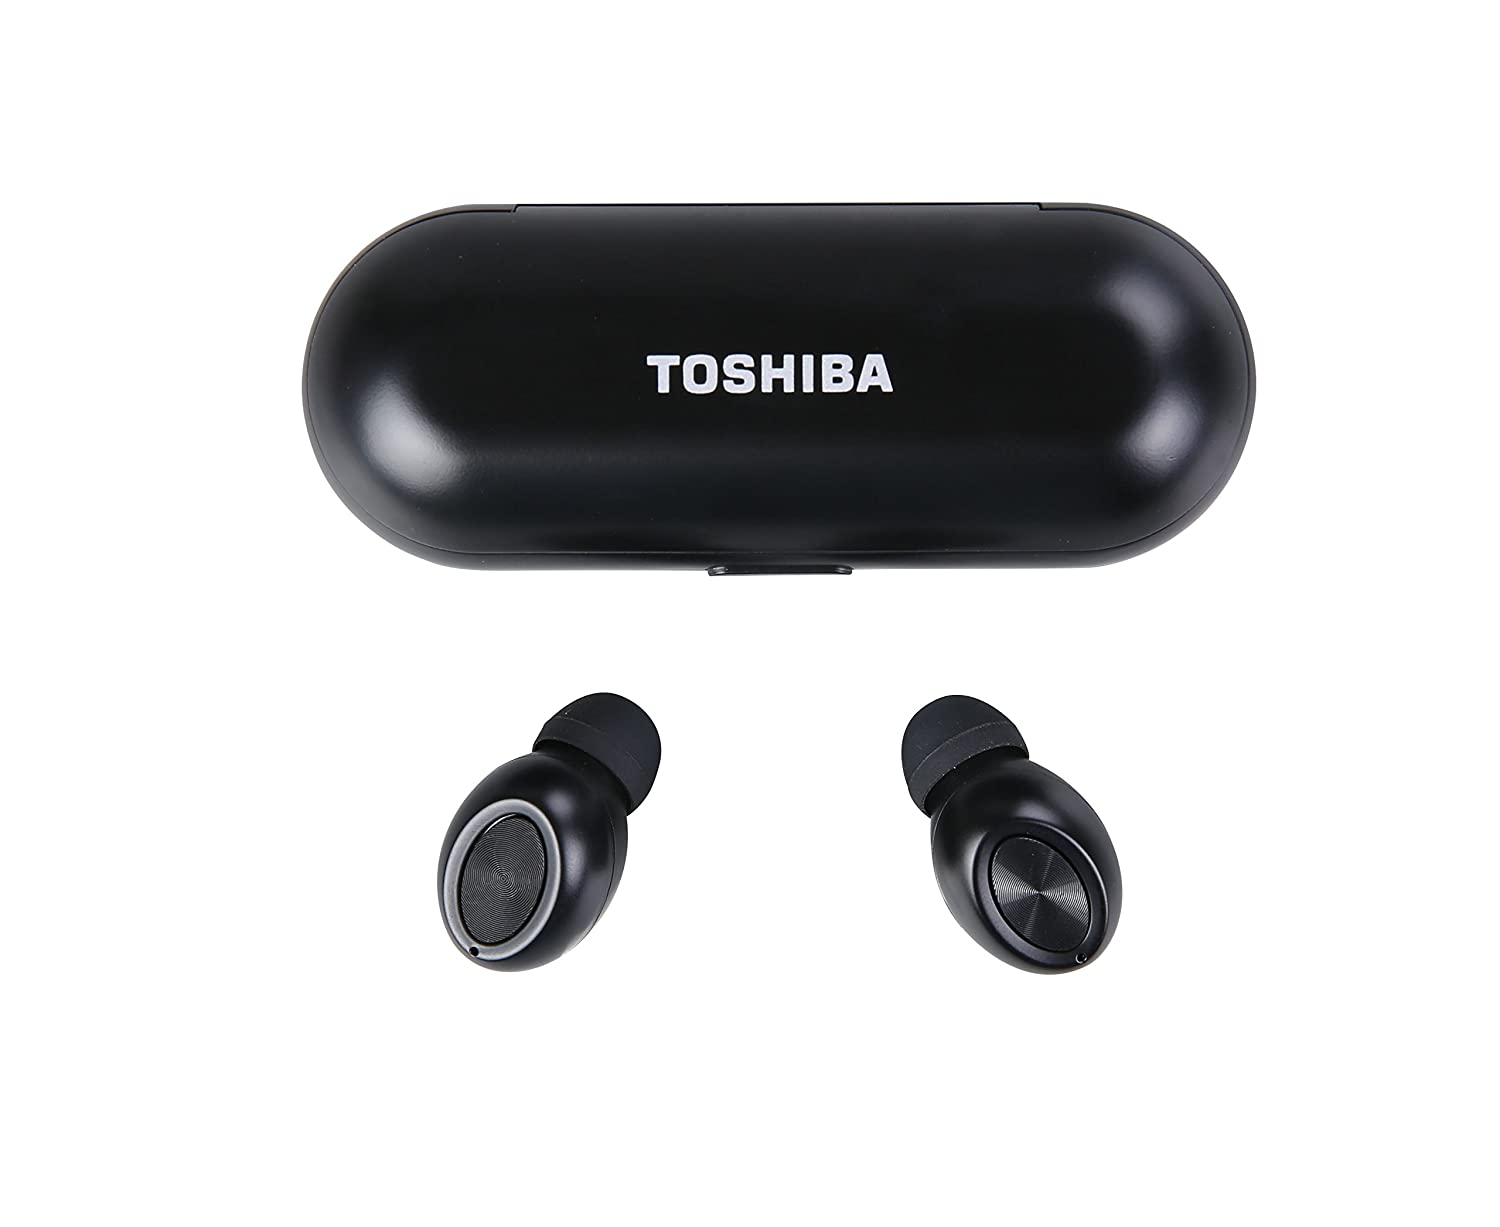 d420fafedea Amazon.com: Toshiba RZE-BT700E True Wireless Stereo Sweat-Resistant  Bluetooth 4.1 Earphones with Built-in Microphone up to 30' (10m) Black:  Electronics